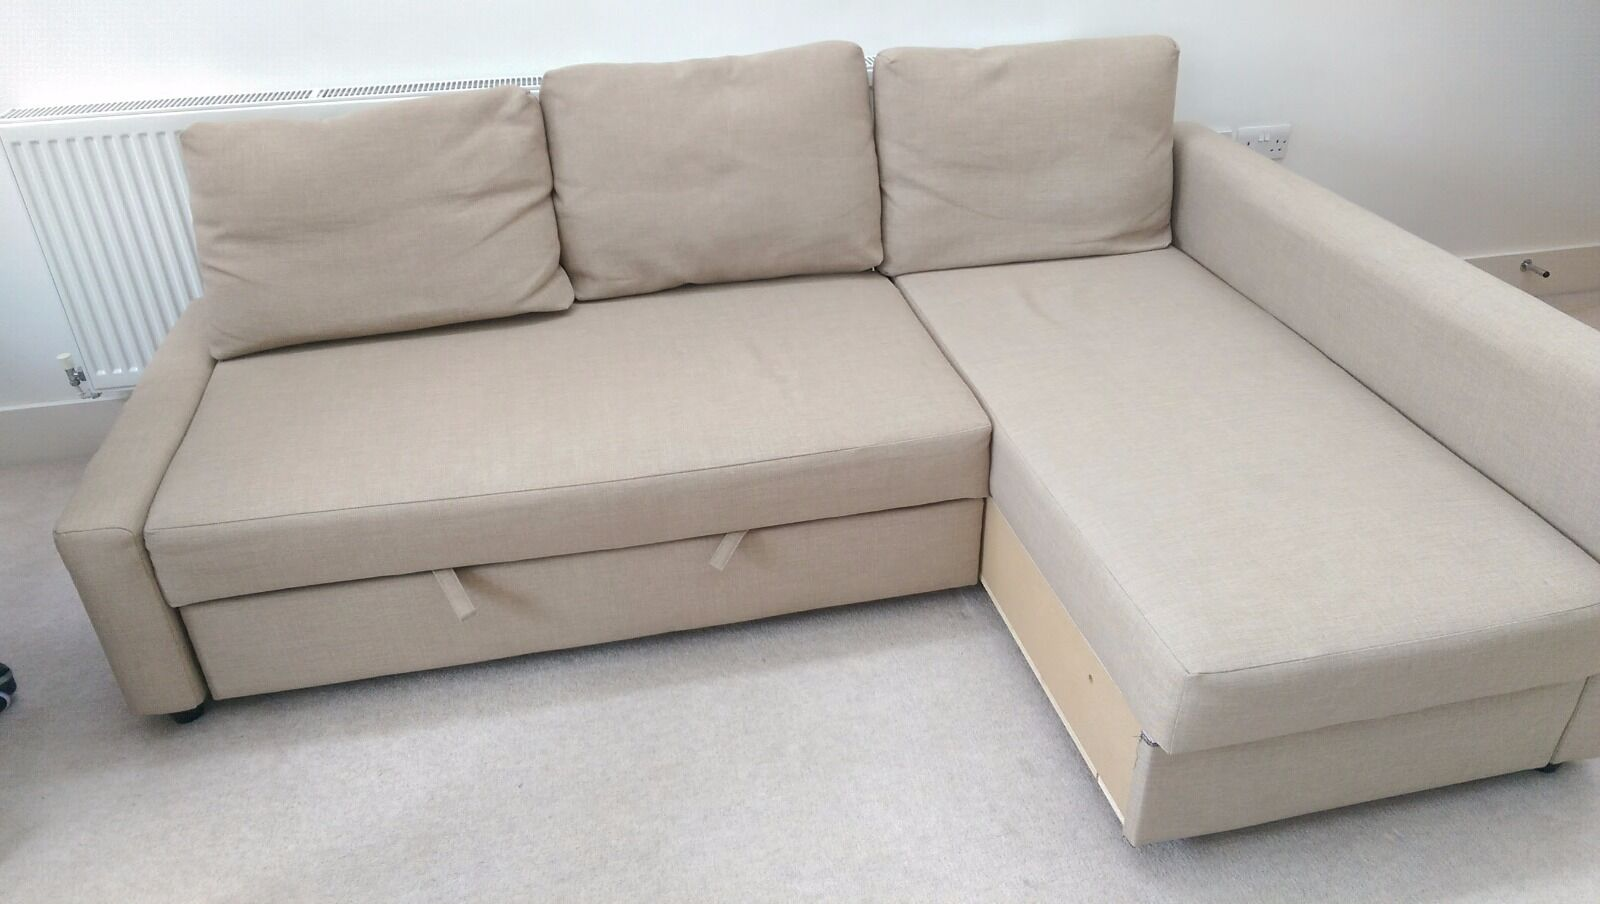 Ikea friheten corner sofa bed with storage for Ikea corner sofa